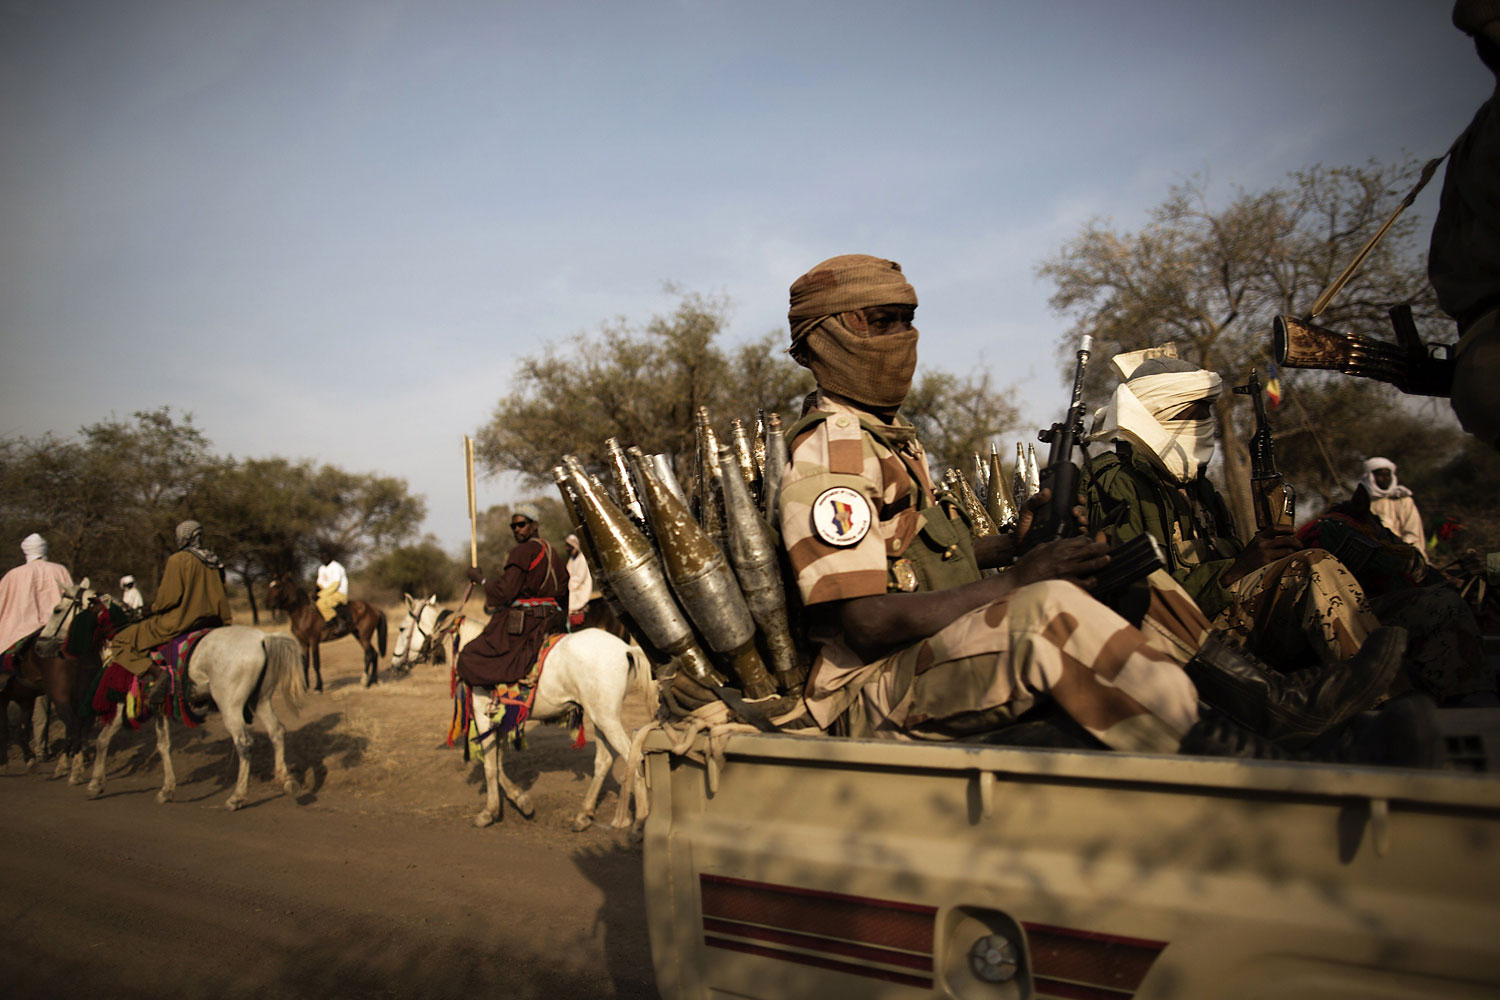 Chadian soldiers escorting the Chadian President, speed past horsemen arriving to attend a ceremony marking the 50th anniversary of the Zakouma National Park, Chad's oldest natural park, during which elephant tusks will be incinerated, Feb. 21, 2014.